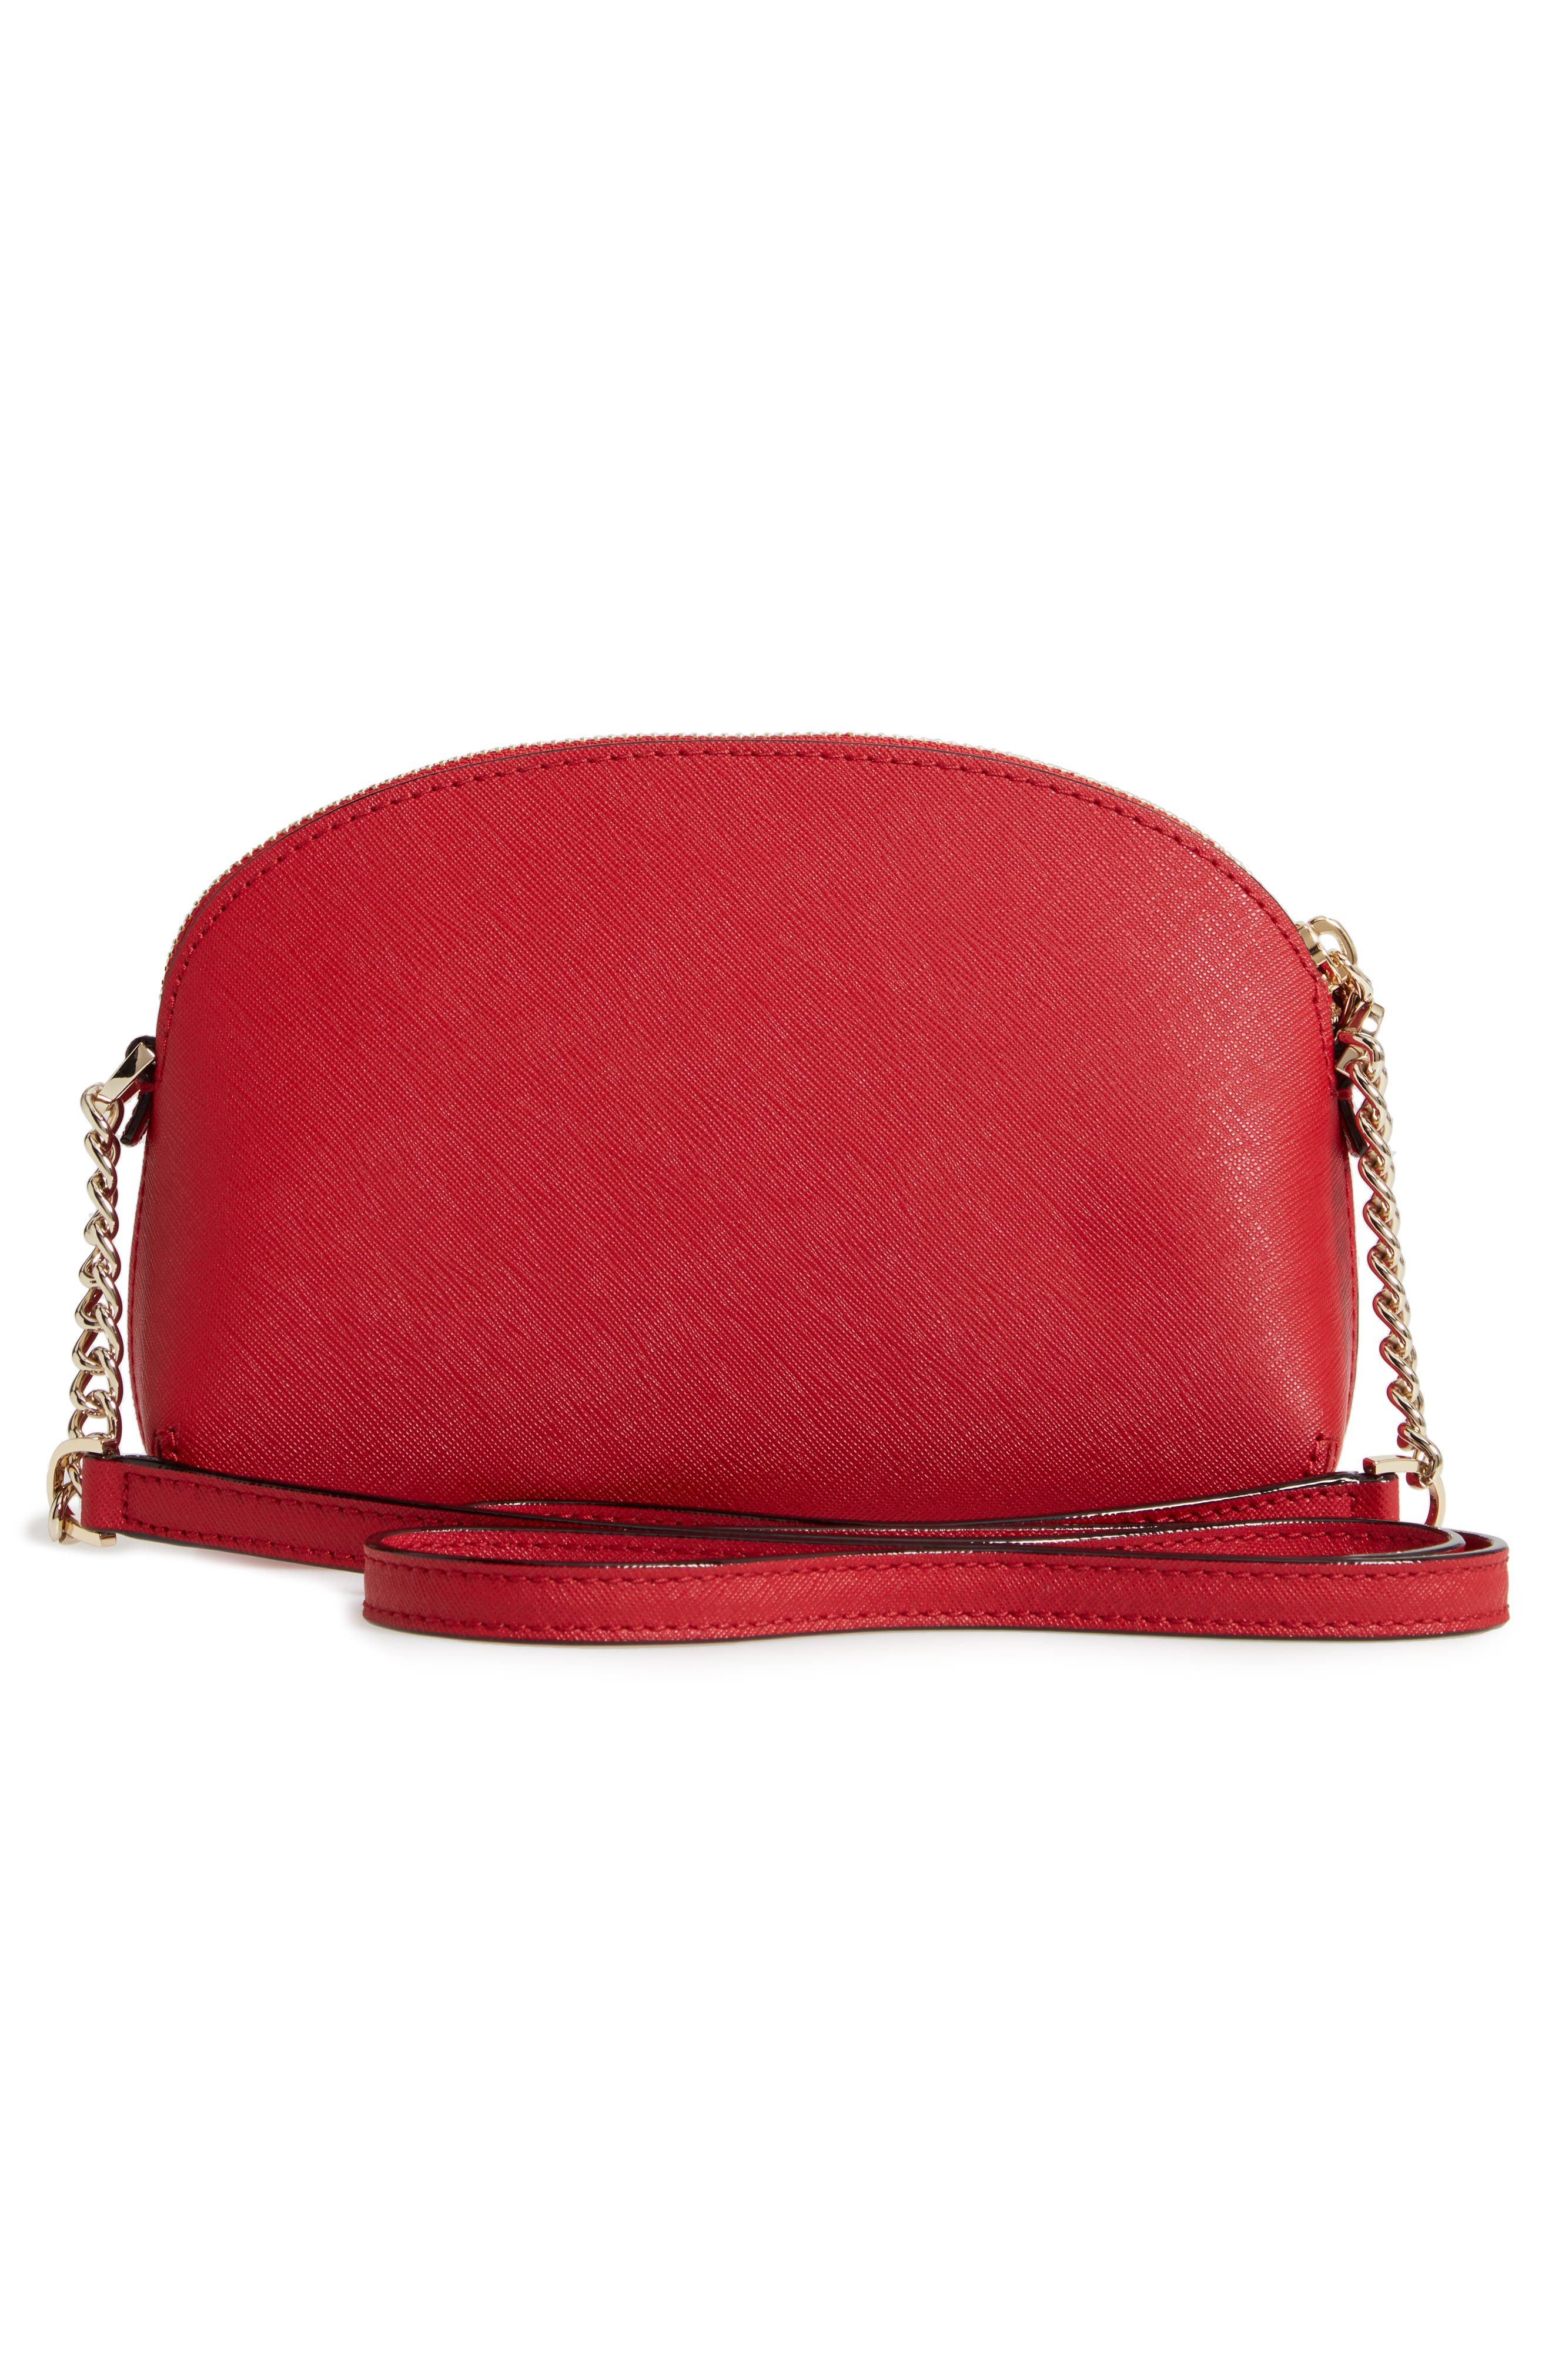 cameron street - hilli leather crossbody bag,                             Alternate thumbnail 3, color,                             600